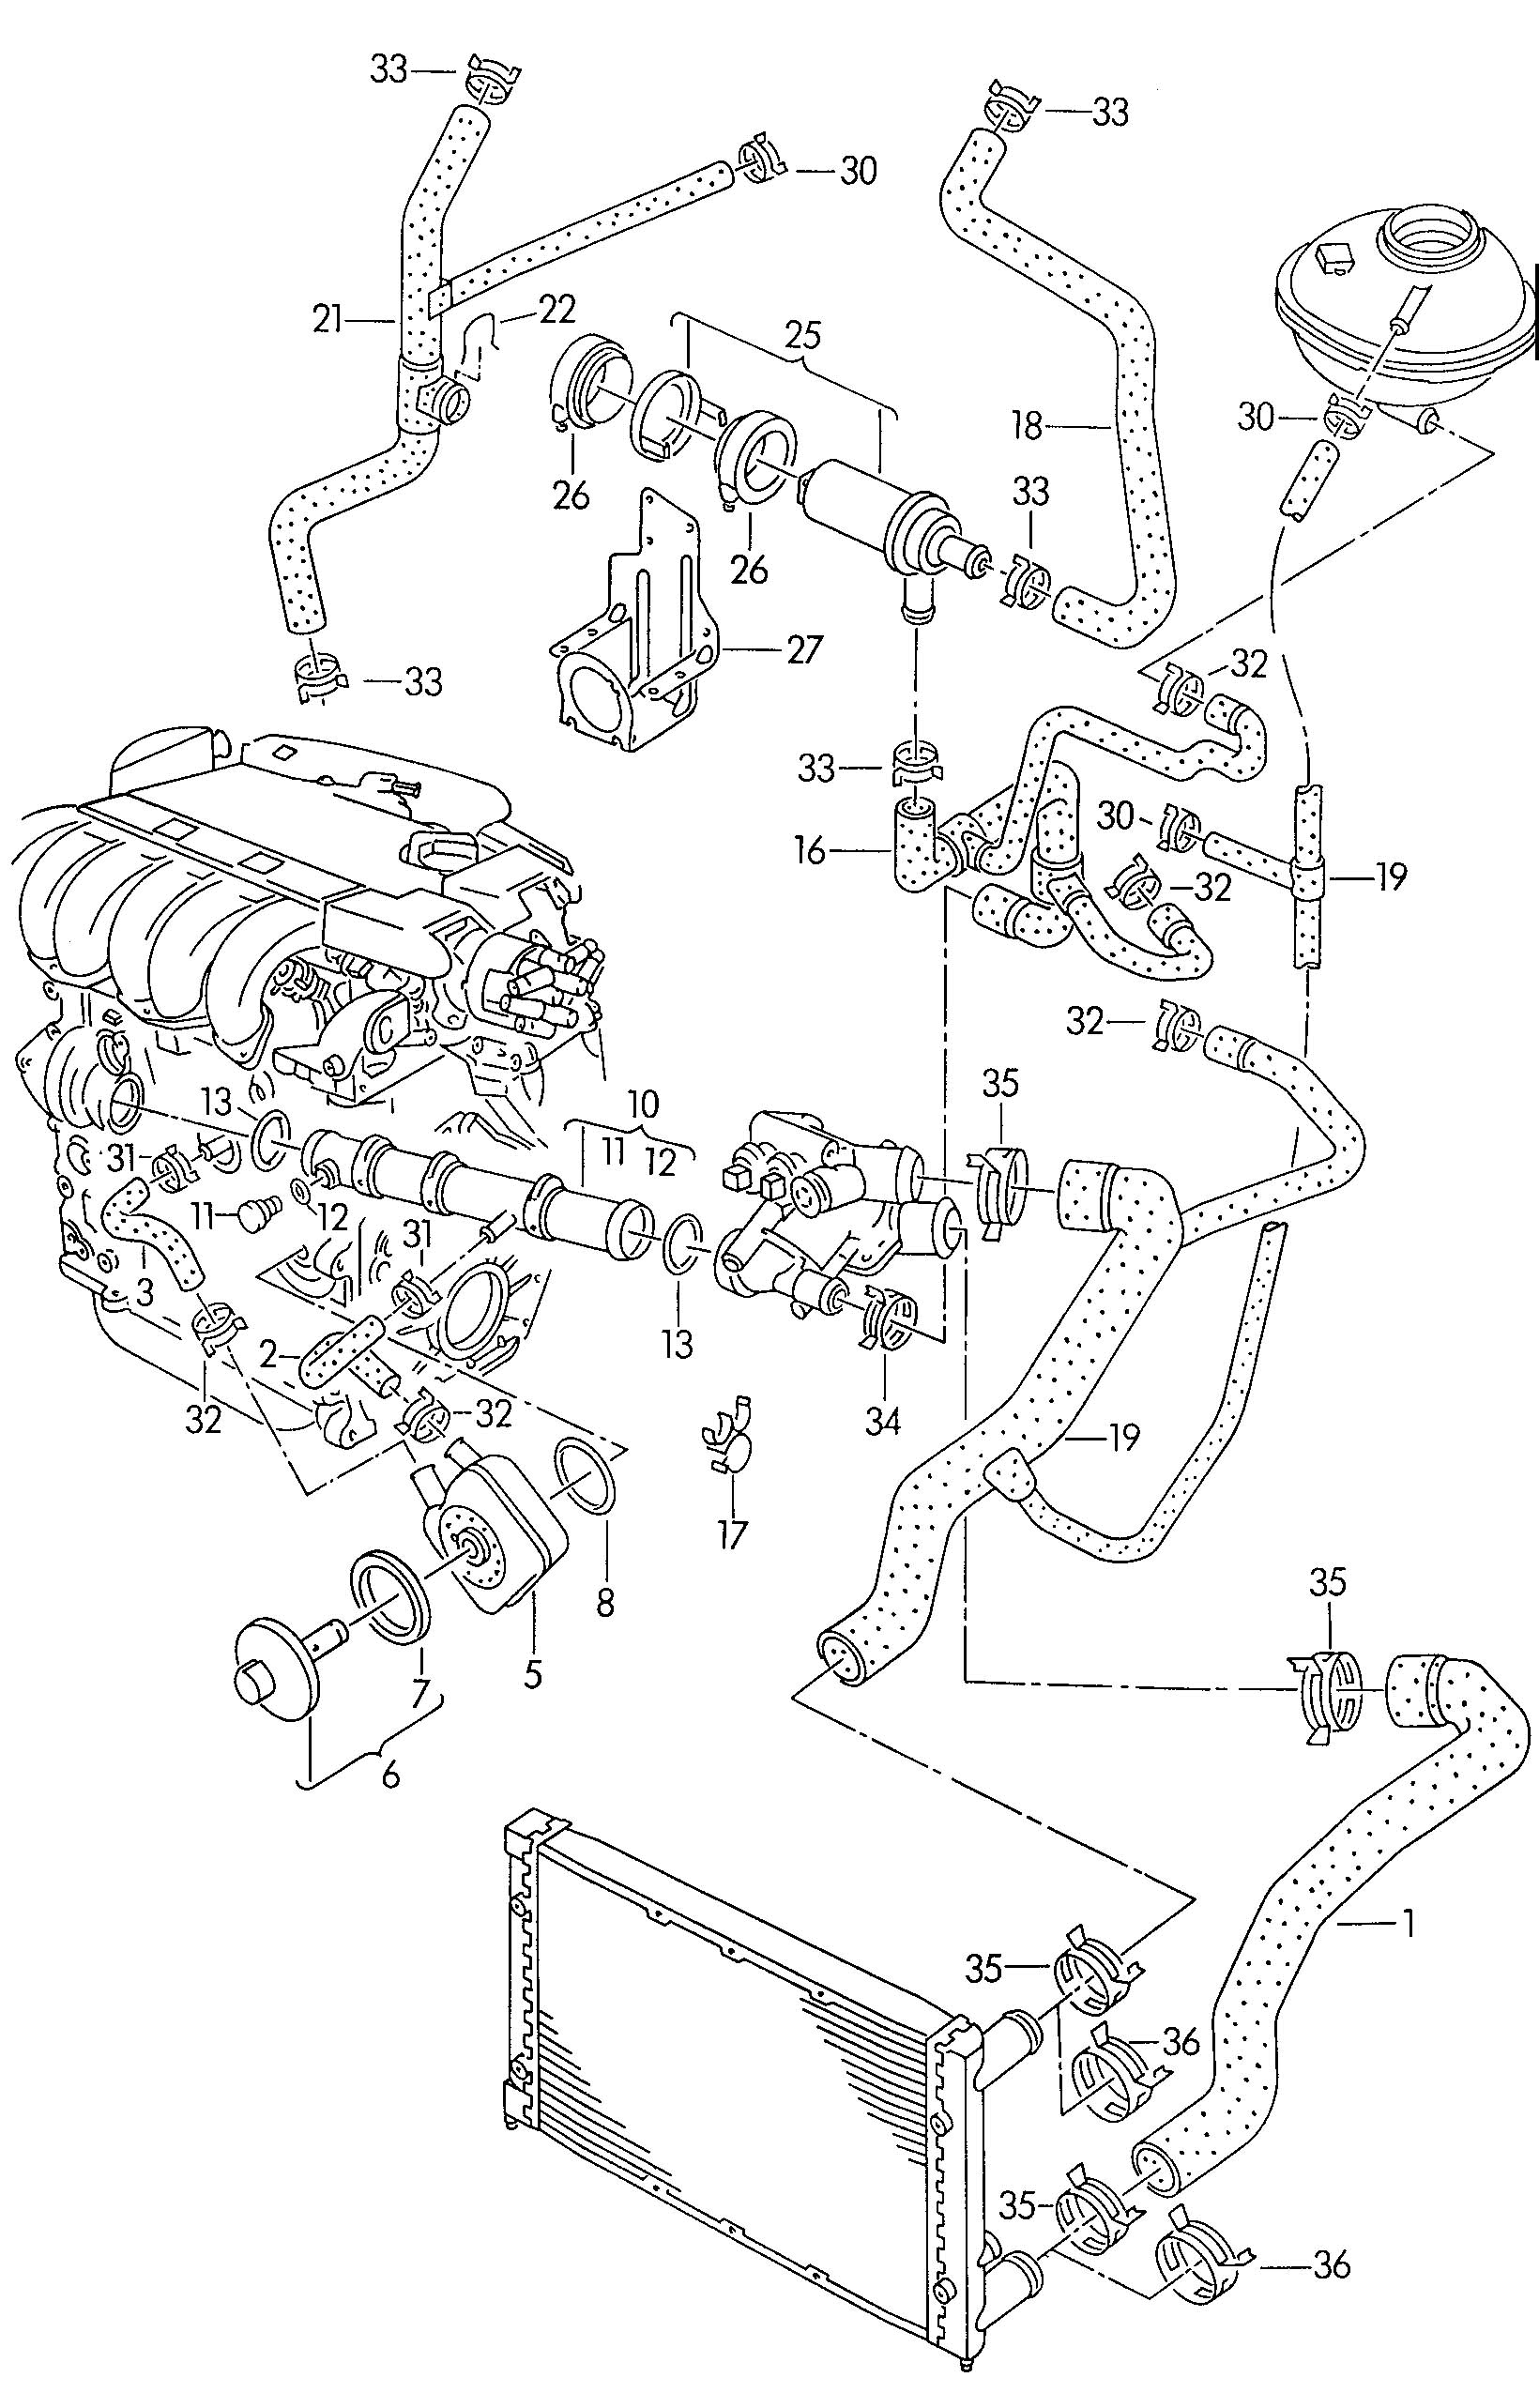 Volkswagen Oem Parts Diagram. Volkswagen. Auto Wiring Diagram